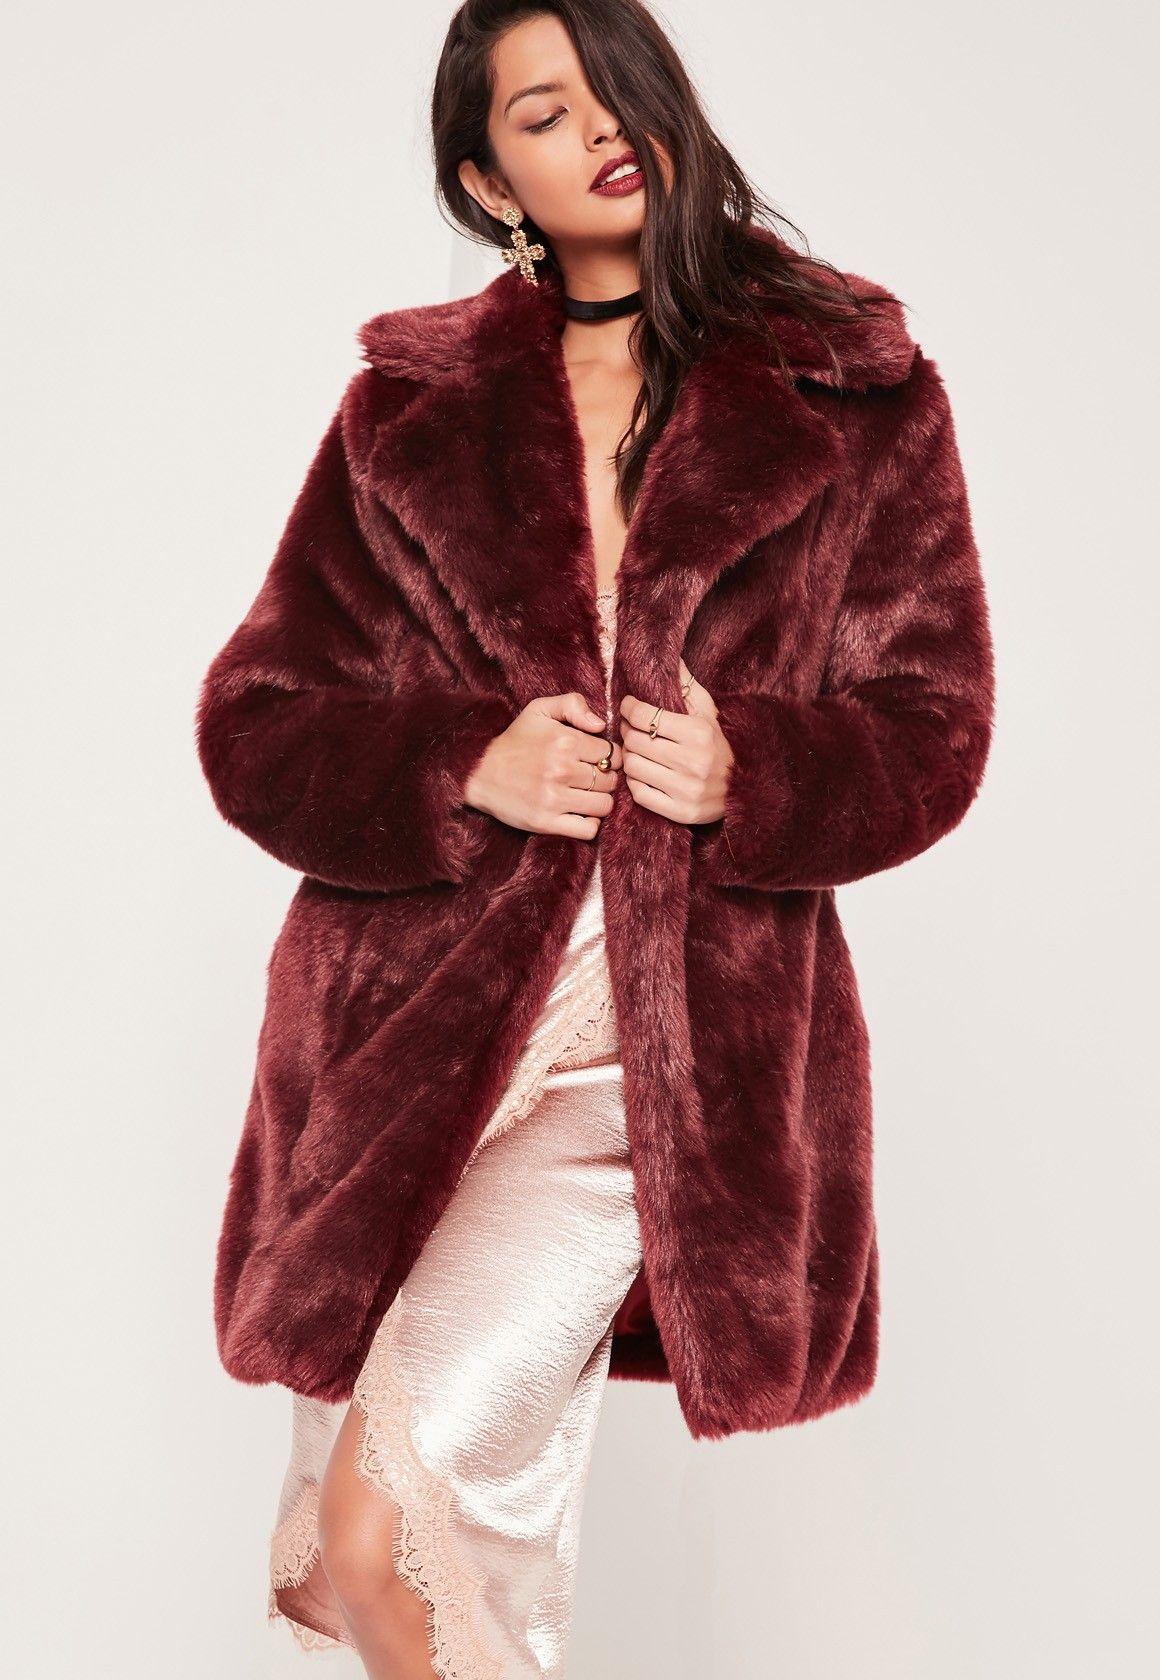 Jump into new season style in this oversized faux fur coat that is bound to be the talk of the town. Grab it before it's gone!